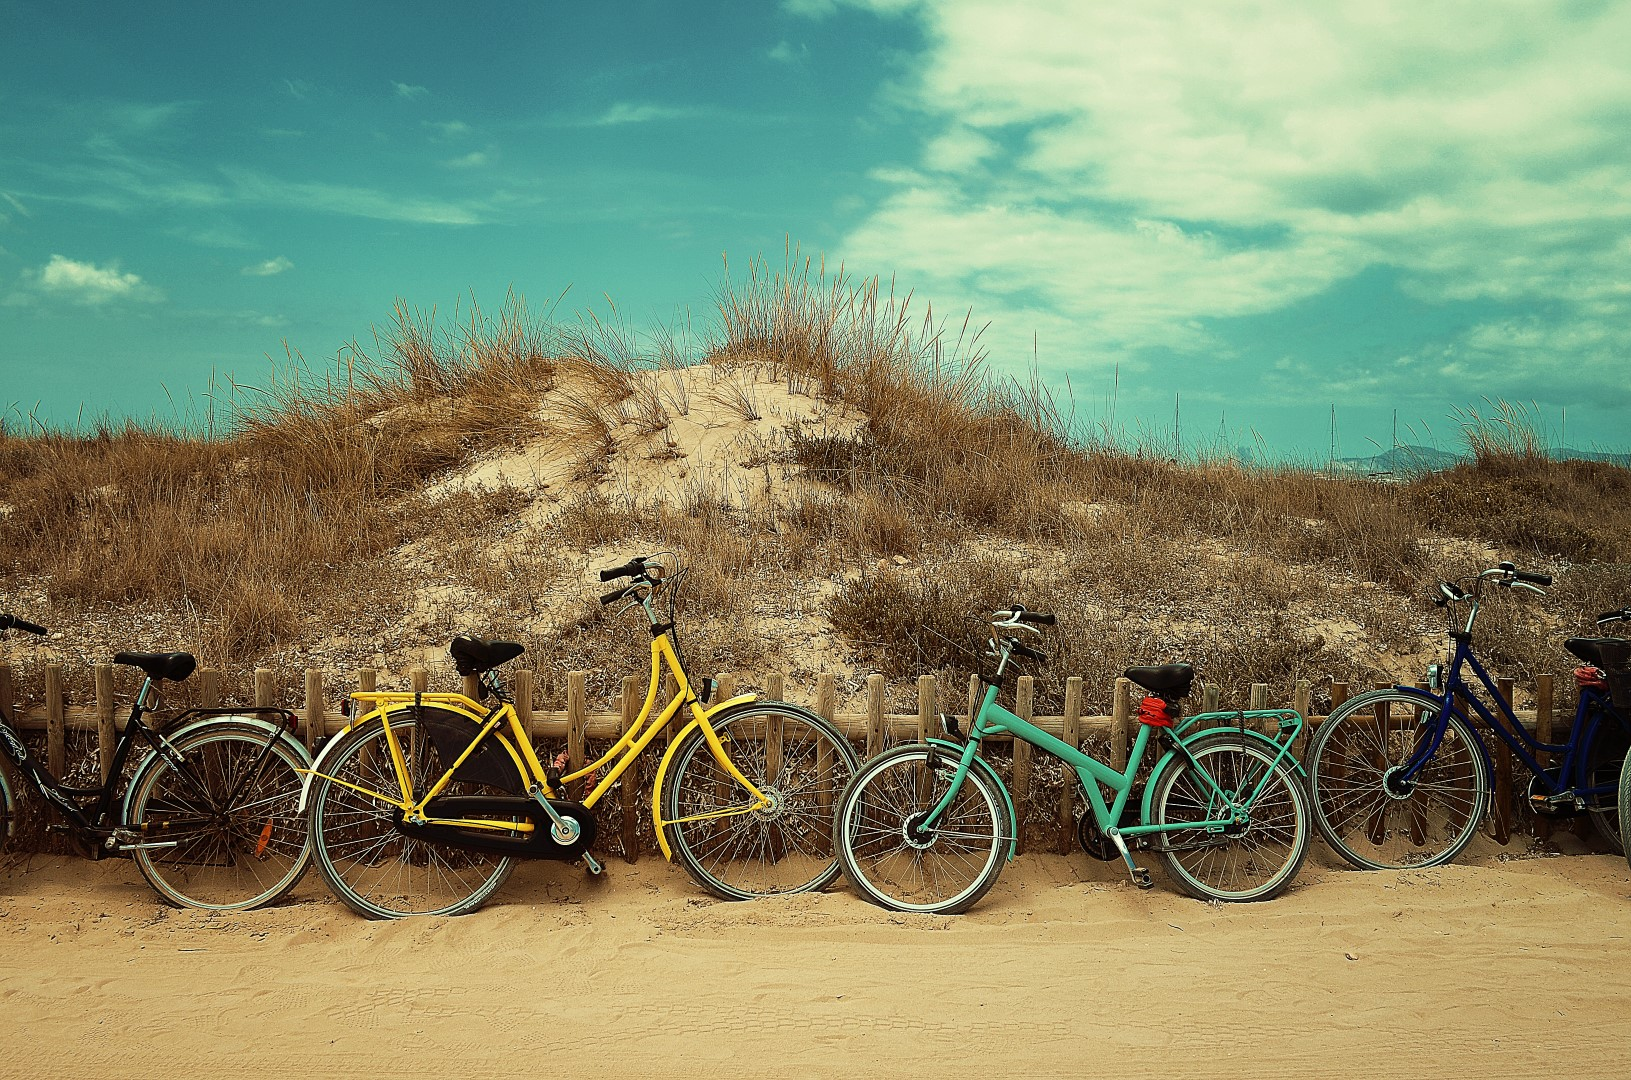 bicycles-1845607